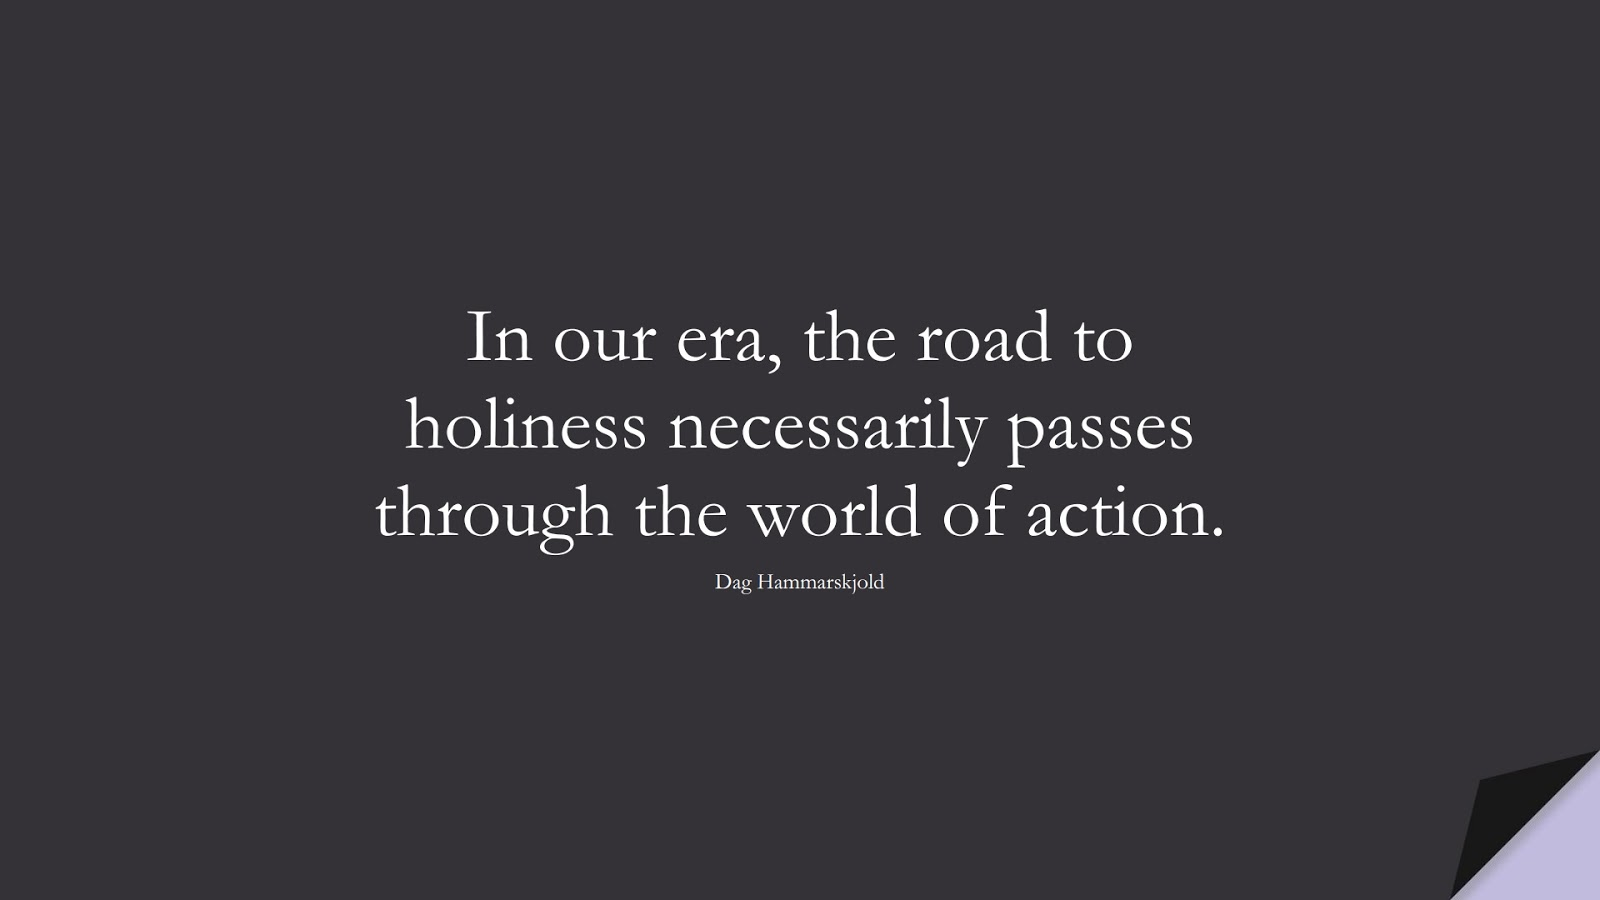 In our era, the road to holiness necessarily passes through the world of action. (Dag Hammarskjold);  #SpiritQuotes